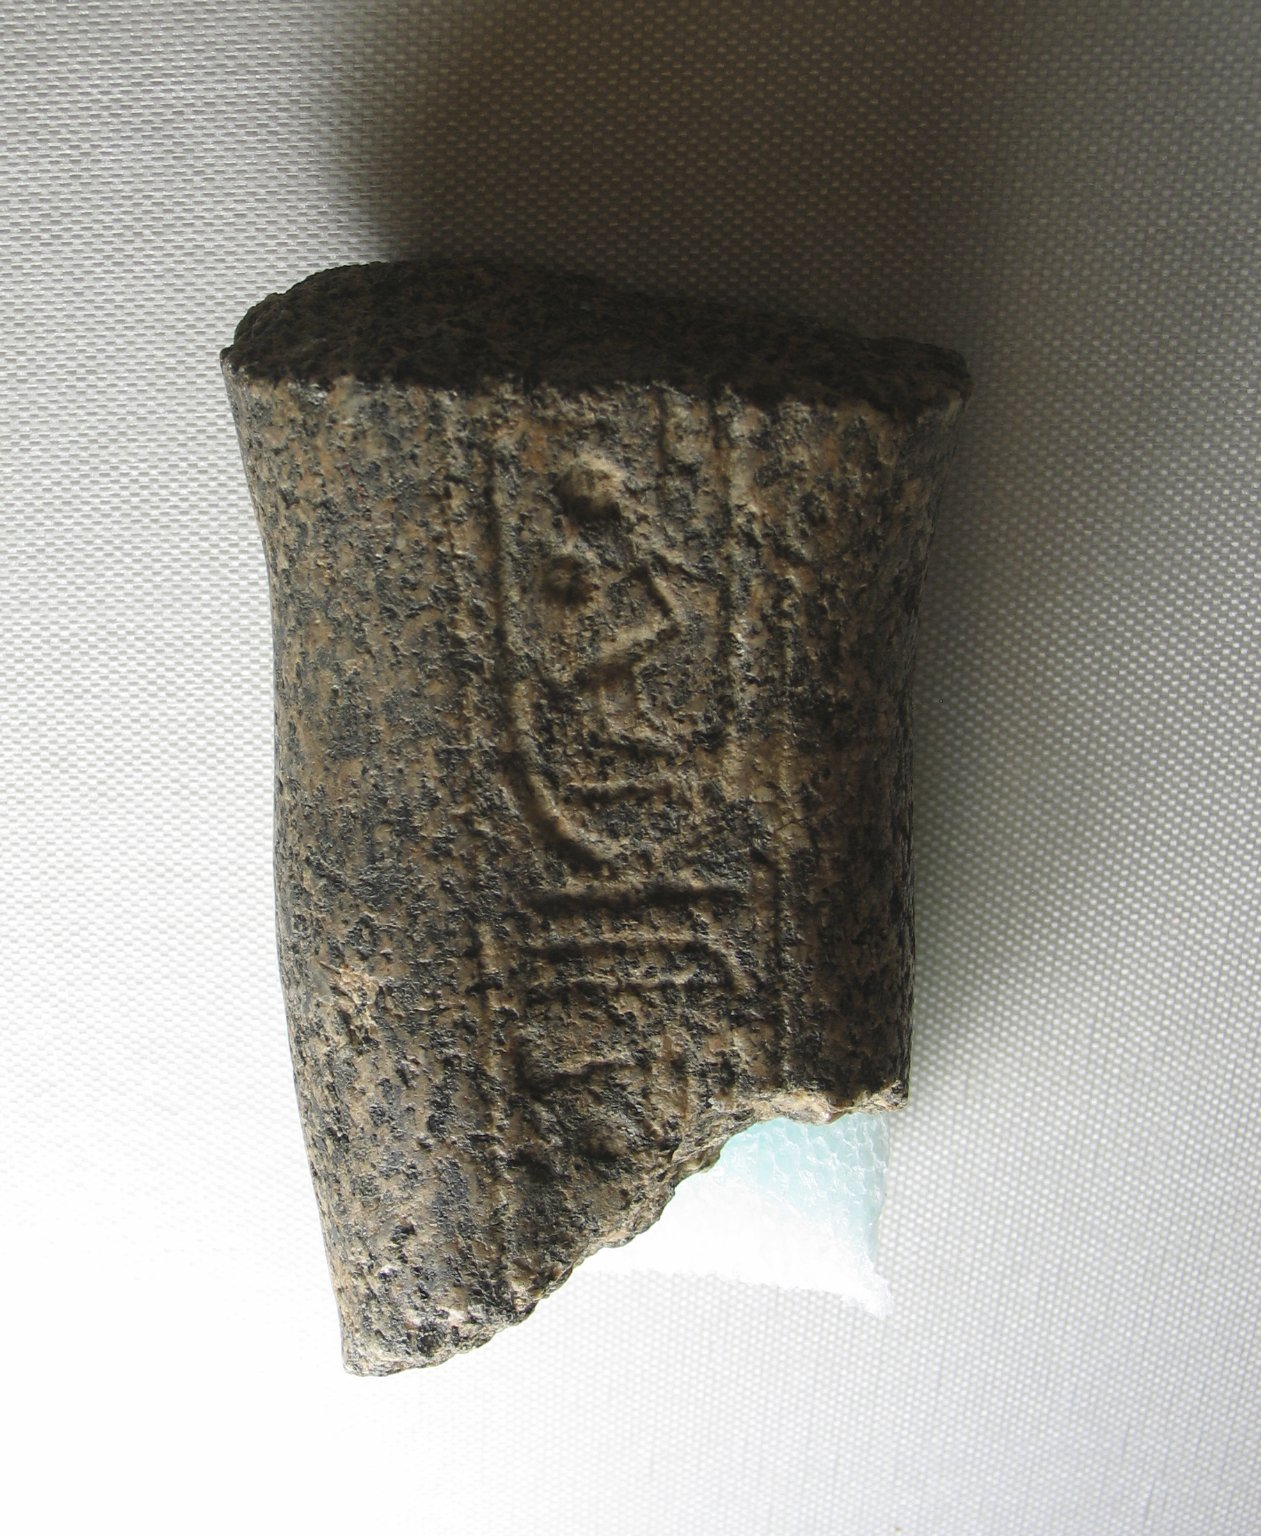 Brooklyn Museum: Fragment of Sculpture of Amenophis IV